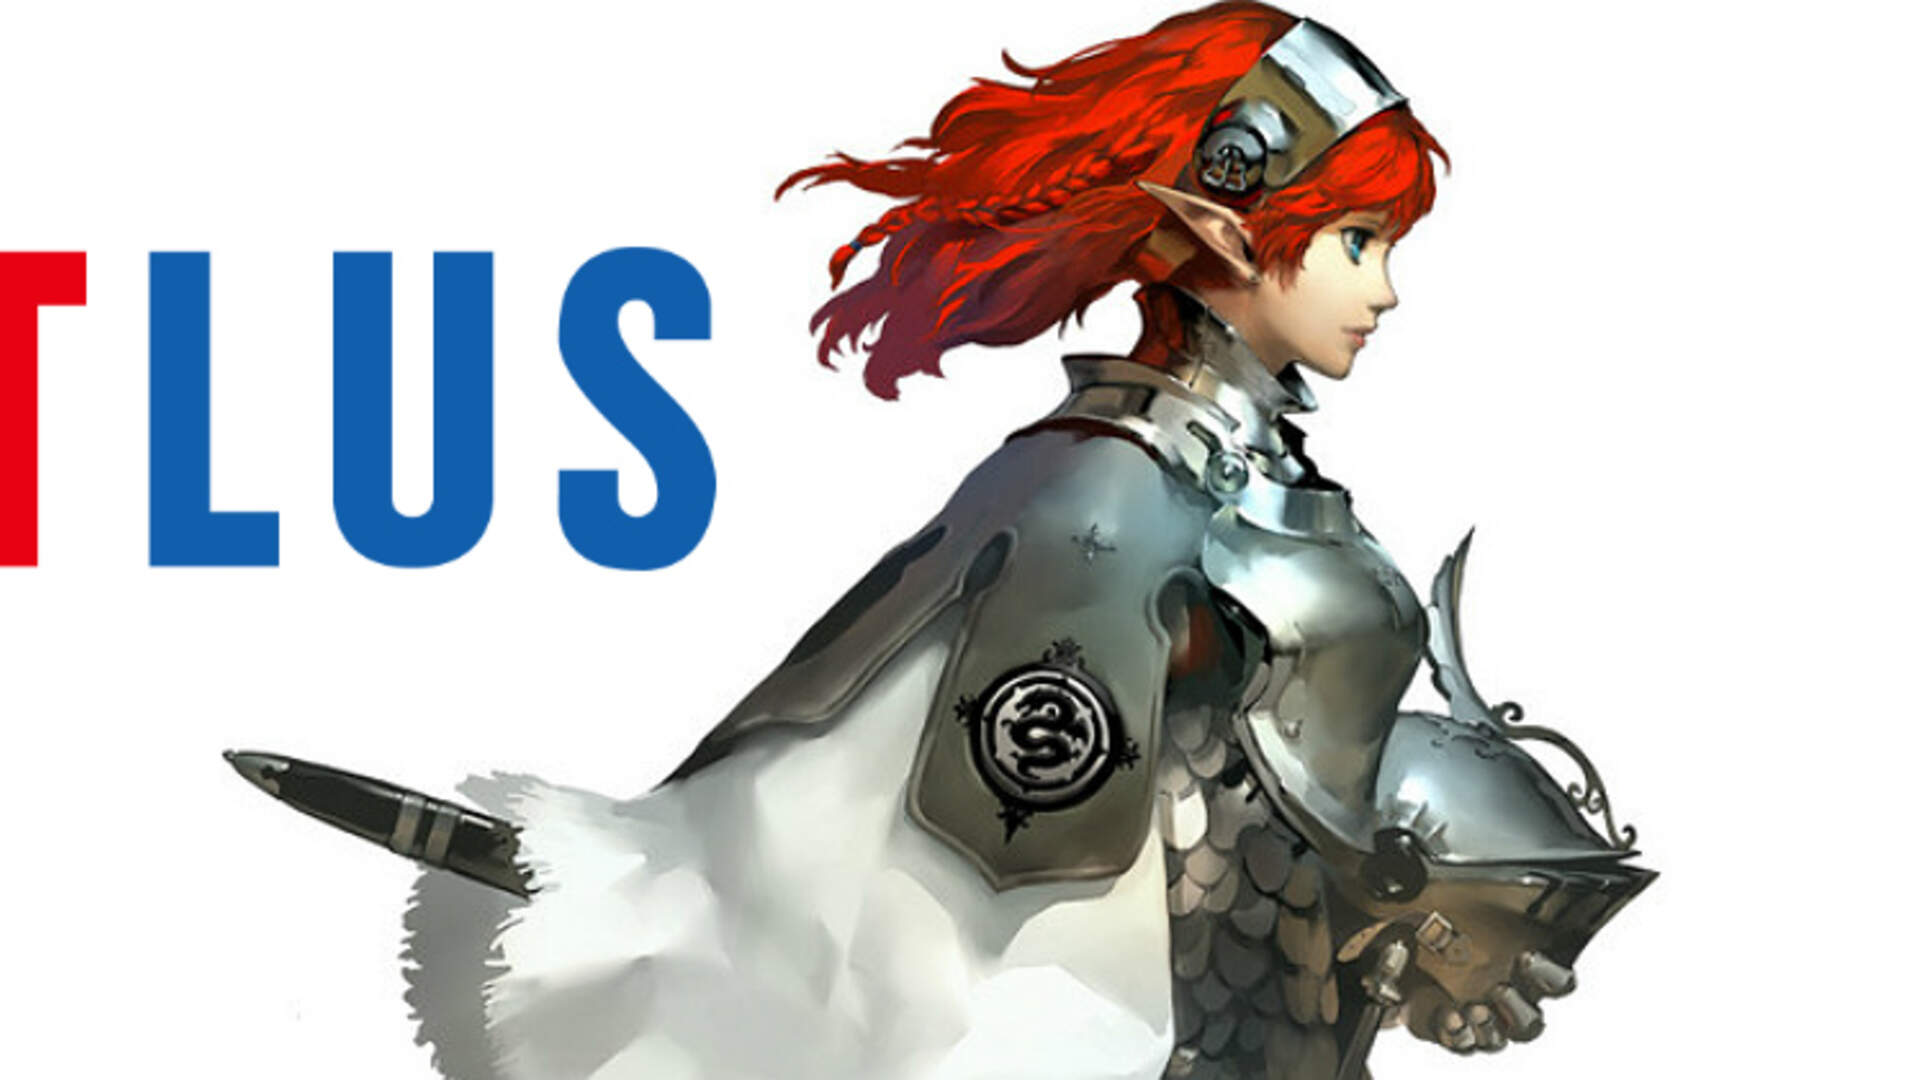 Atlus Announcing New Fantasy RPG on December 23